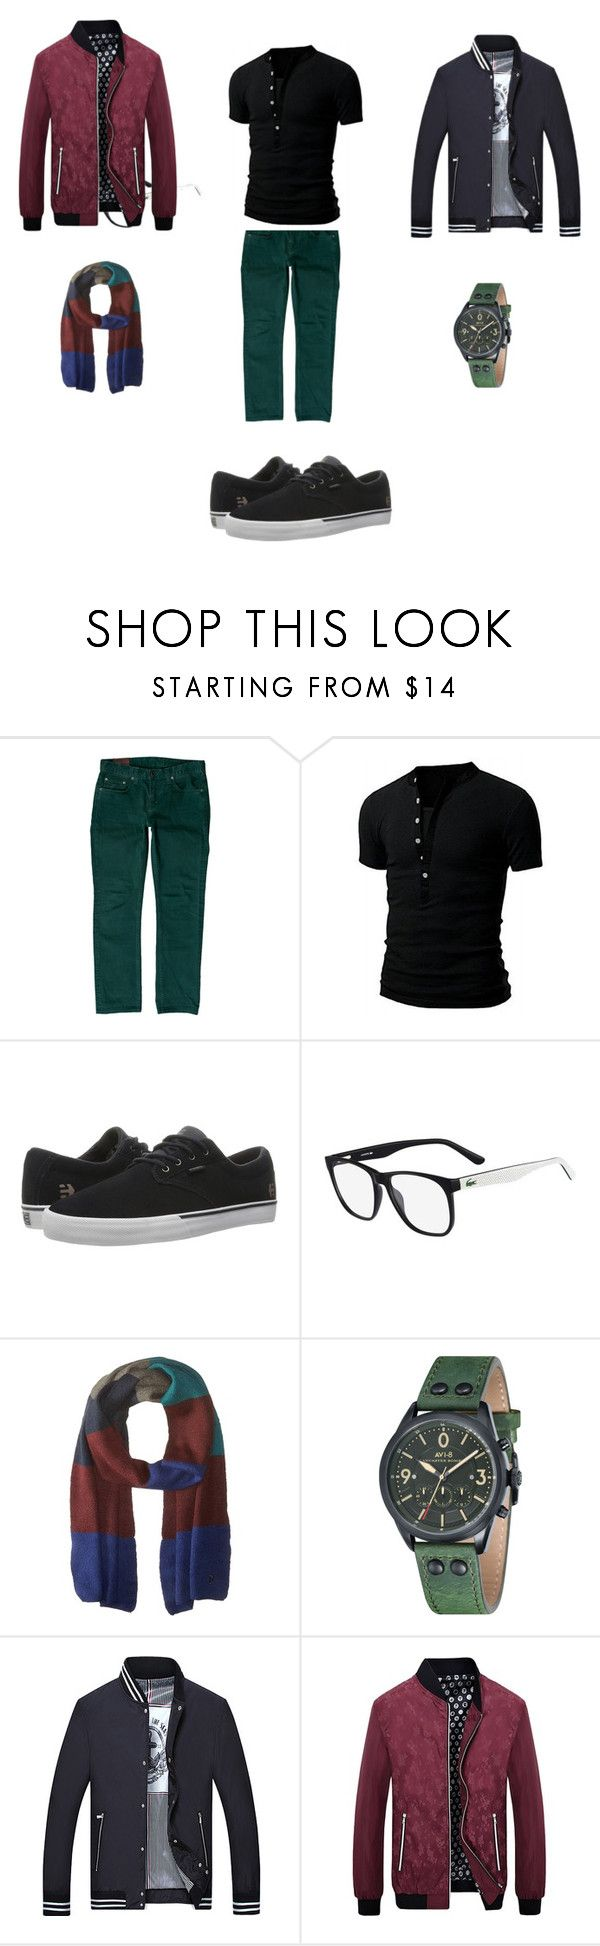 """Men""s Nice set"" by tada-selo123 ❤ liked on Polyvore featuring J Brand, Etnies, Lacoste, French Connection, men's fashion and menswear"